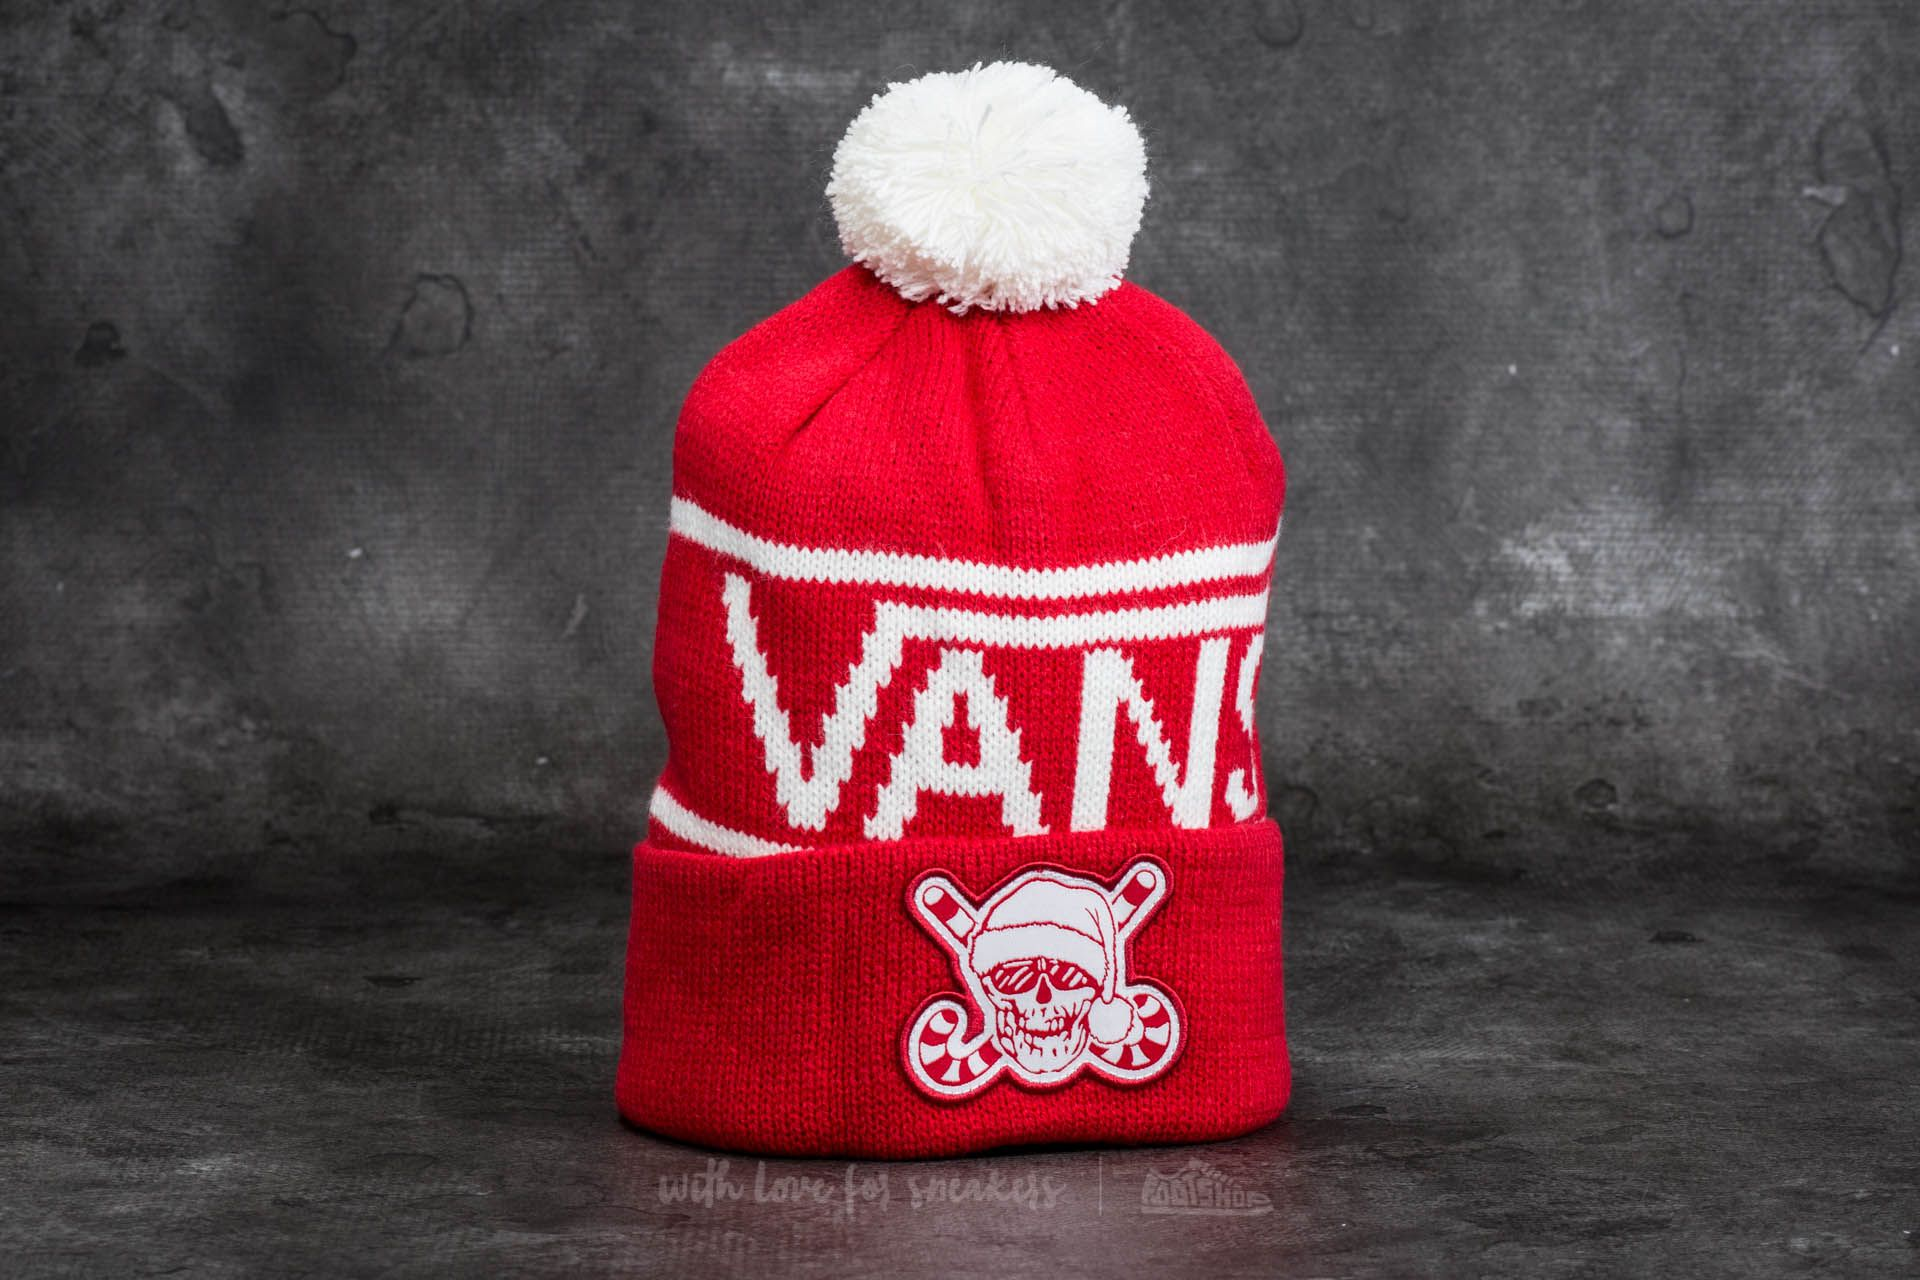 Vans Holiday Pom Beanie Racing Red  722dc899d1ed